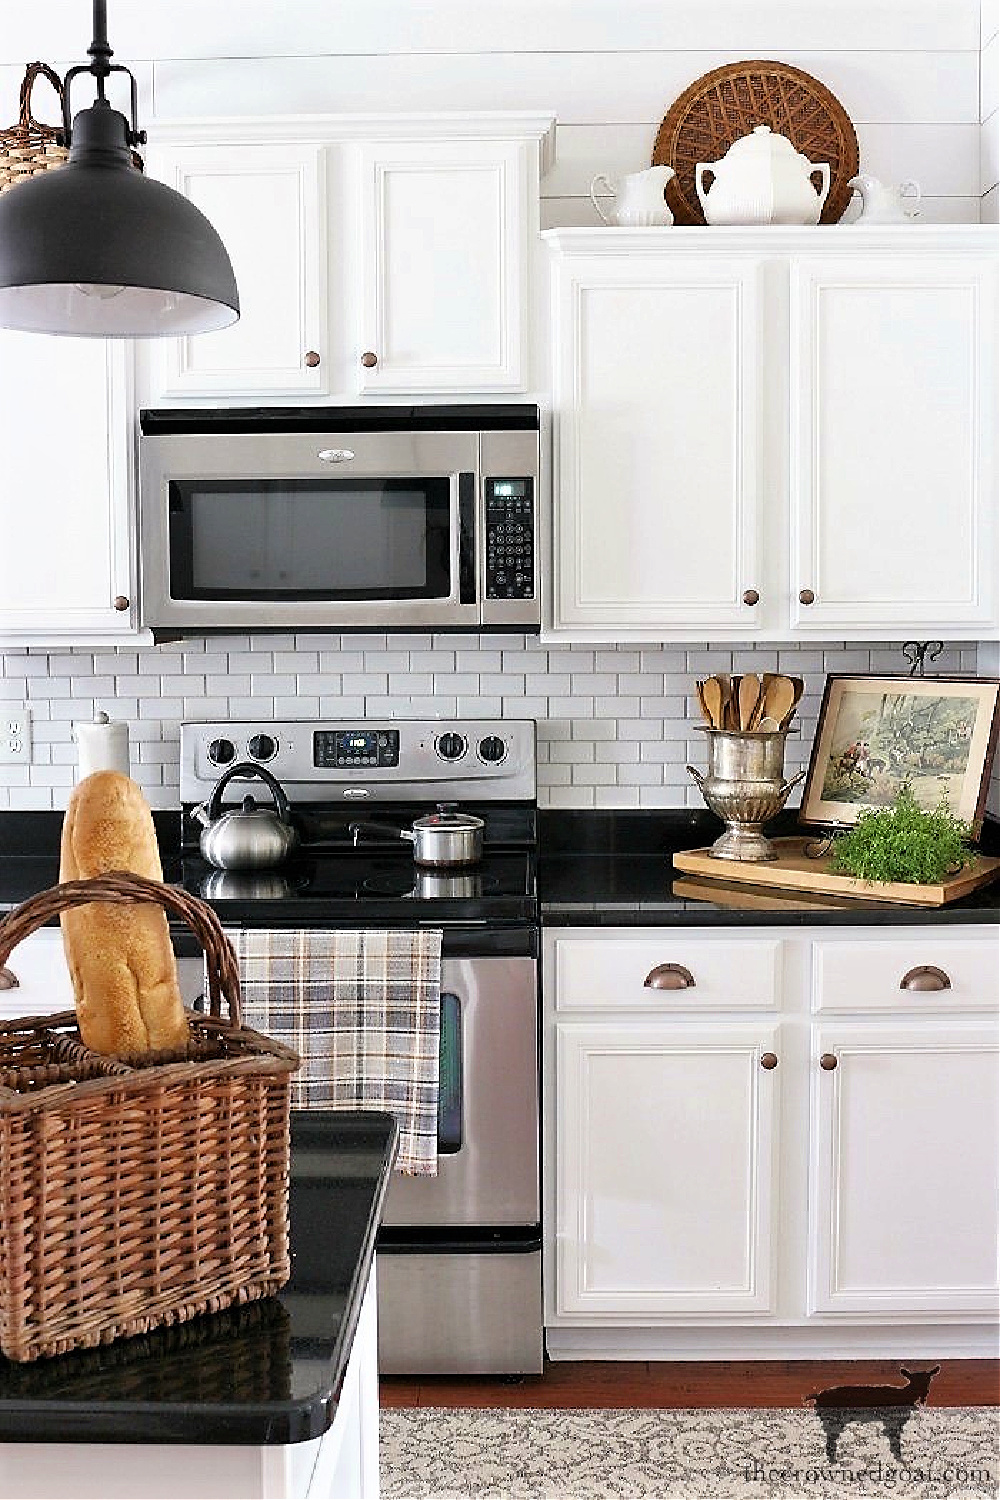 5 Key Spaces to Organize Before School Starts-The Kitchen-The Crowned Goat